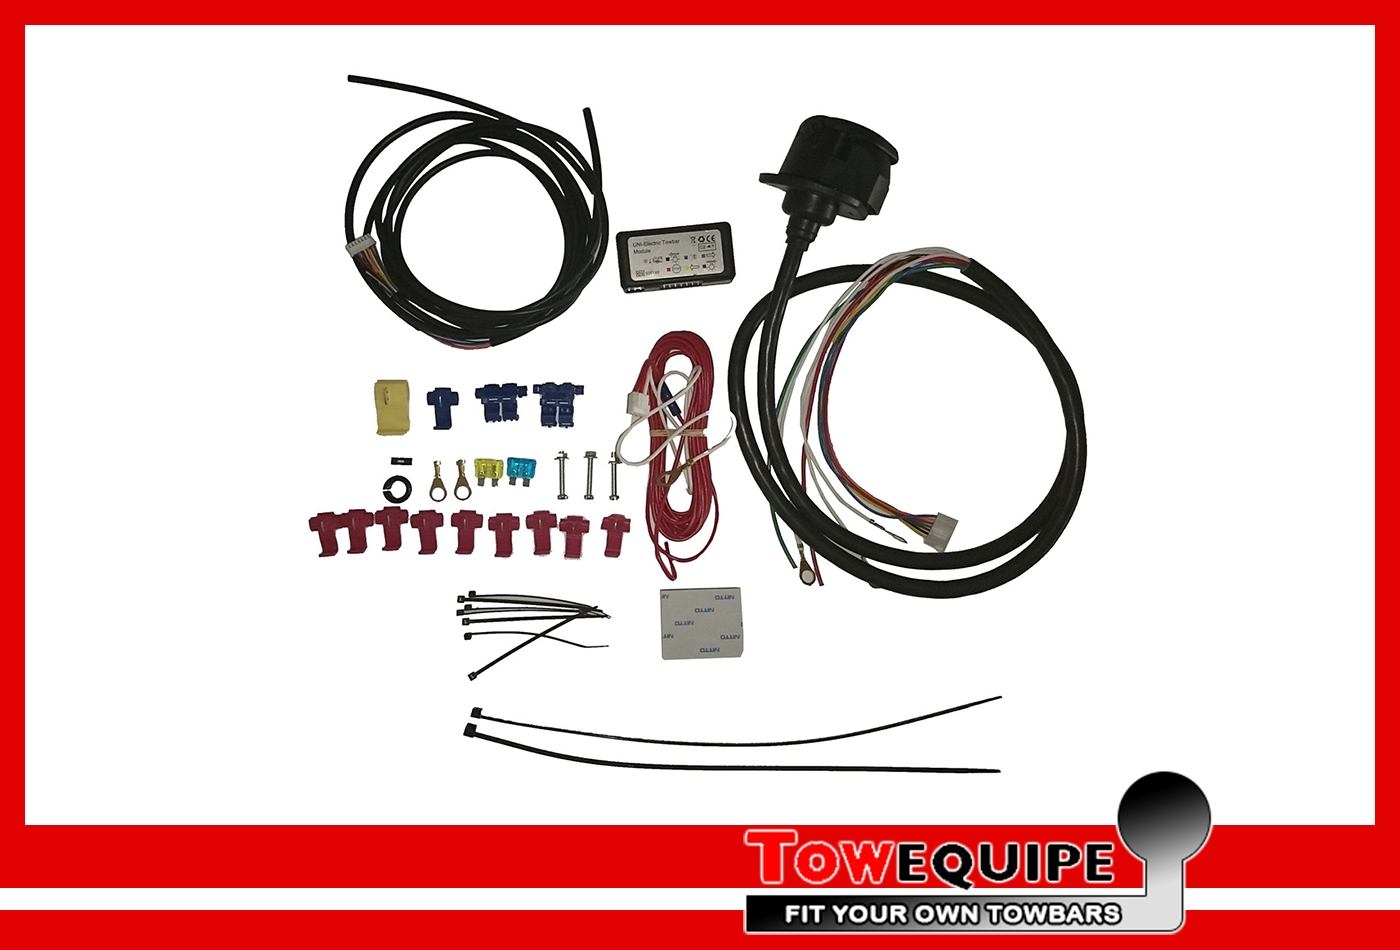 Towbar Wiring Kit 7p C2 Universal 12n Single Electrics With Pdc Tow Bar Control 955400